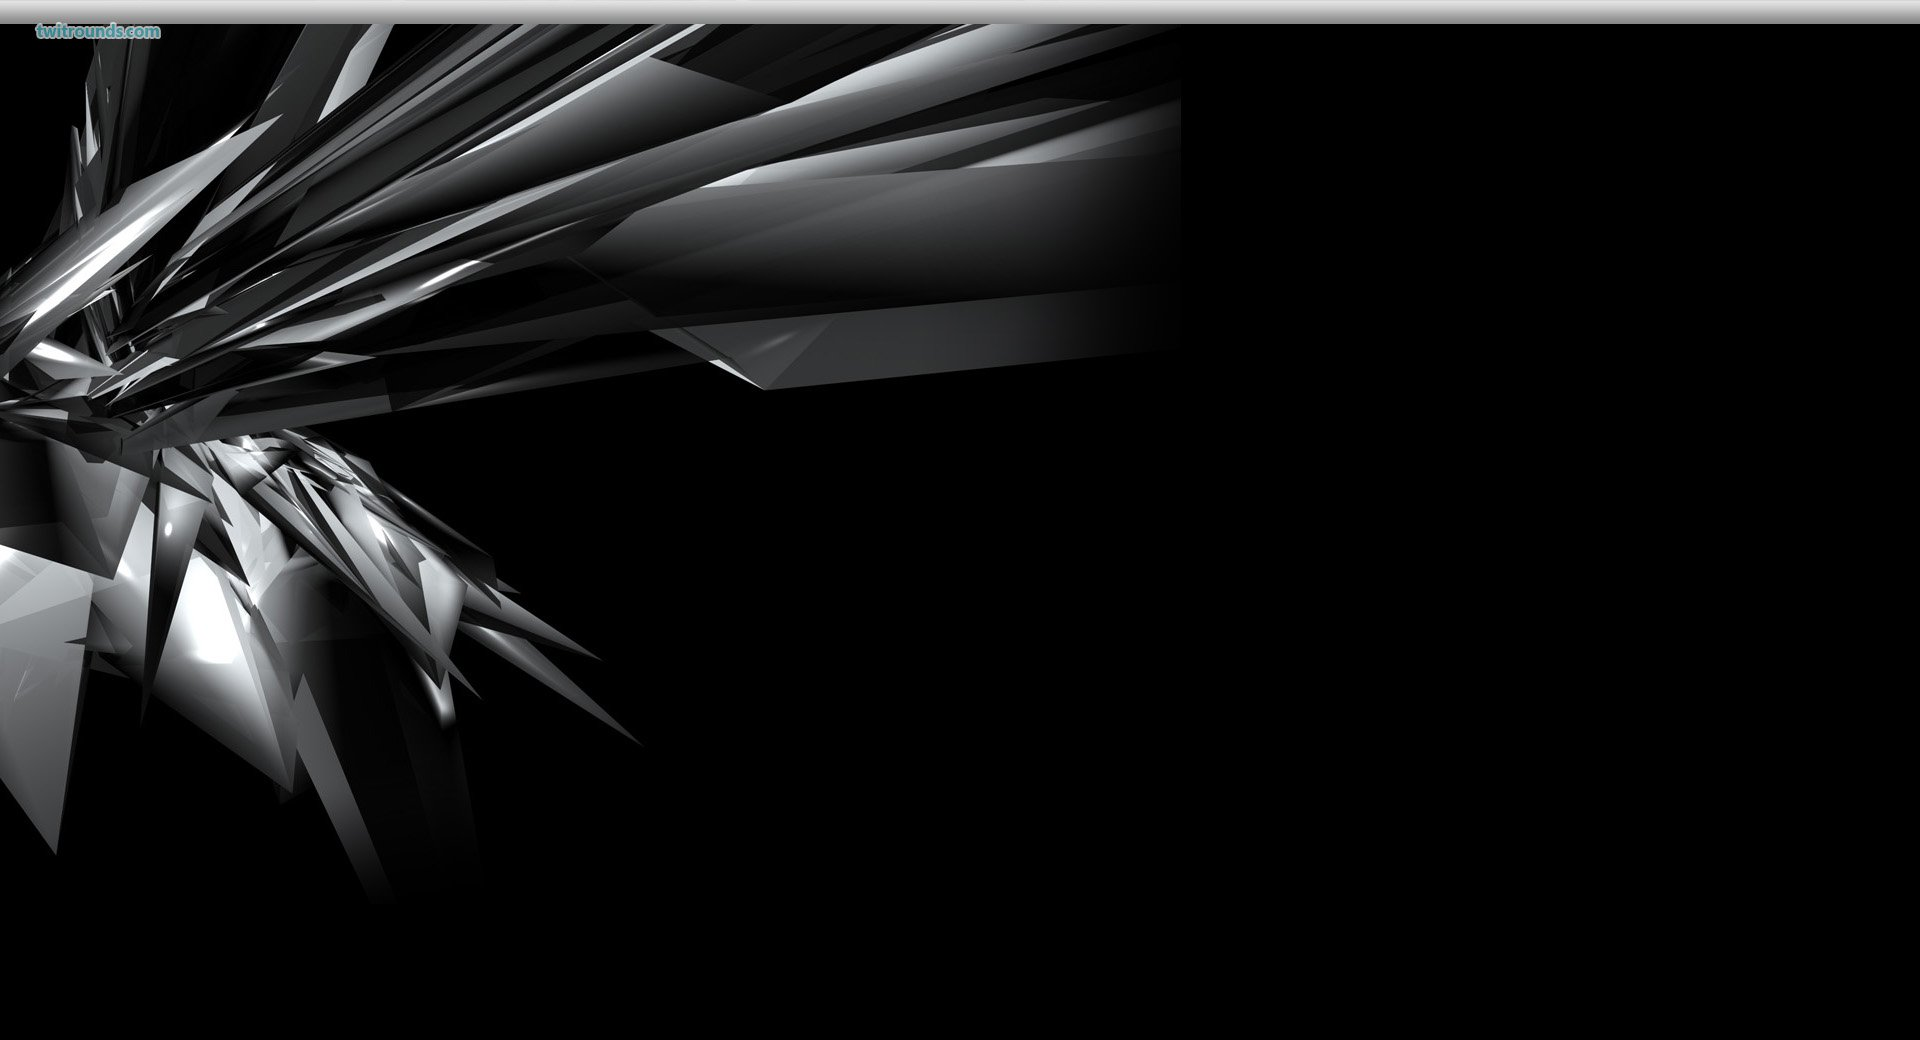 [47+] Black and Silver Background Wallpaper on WallpaperSafari